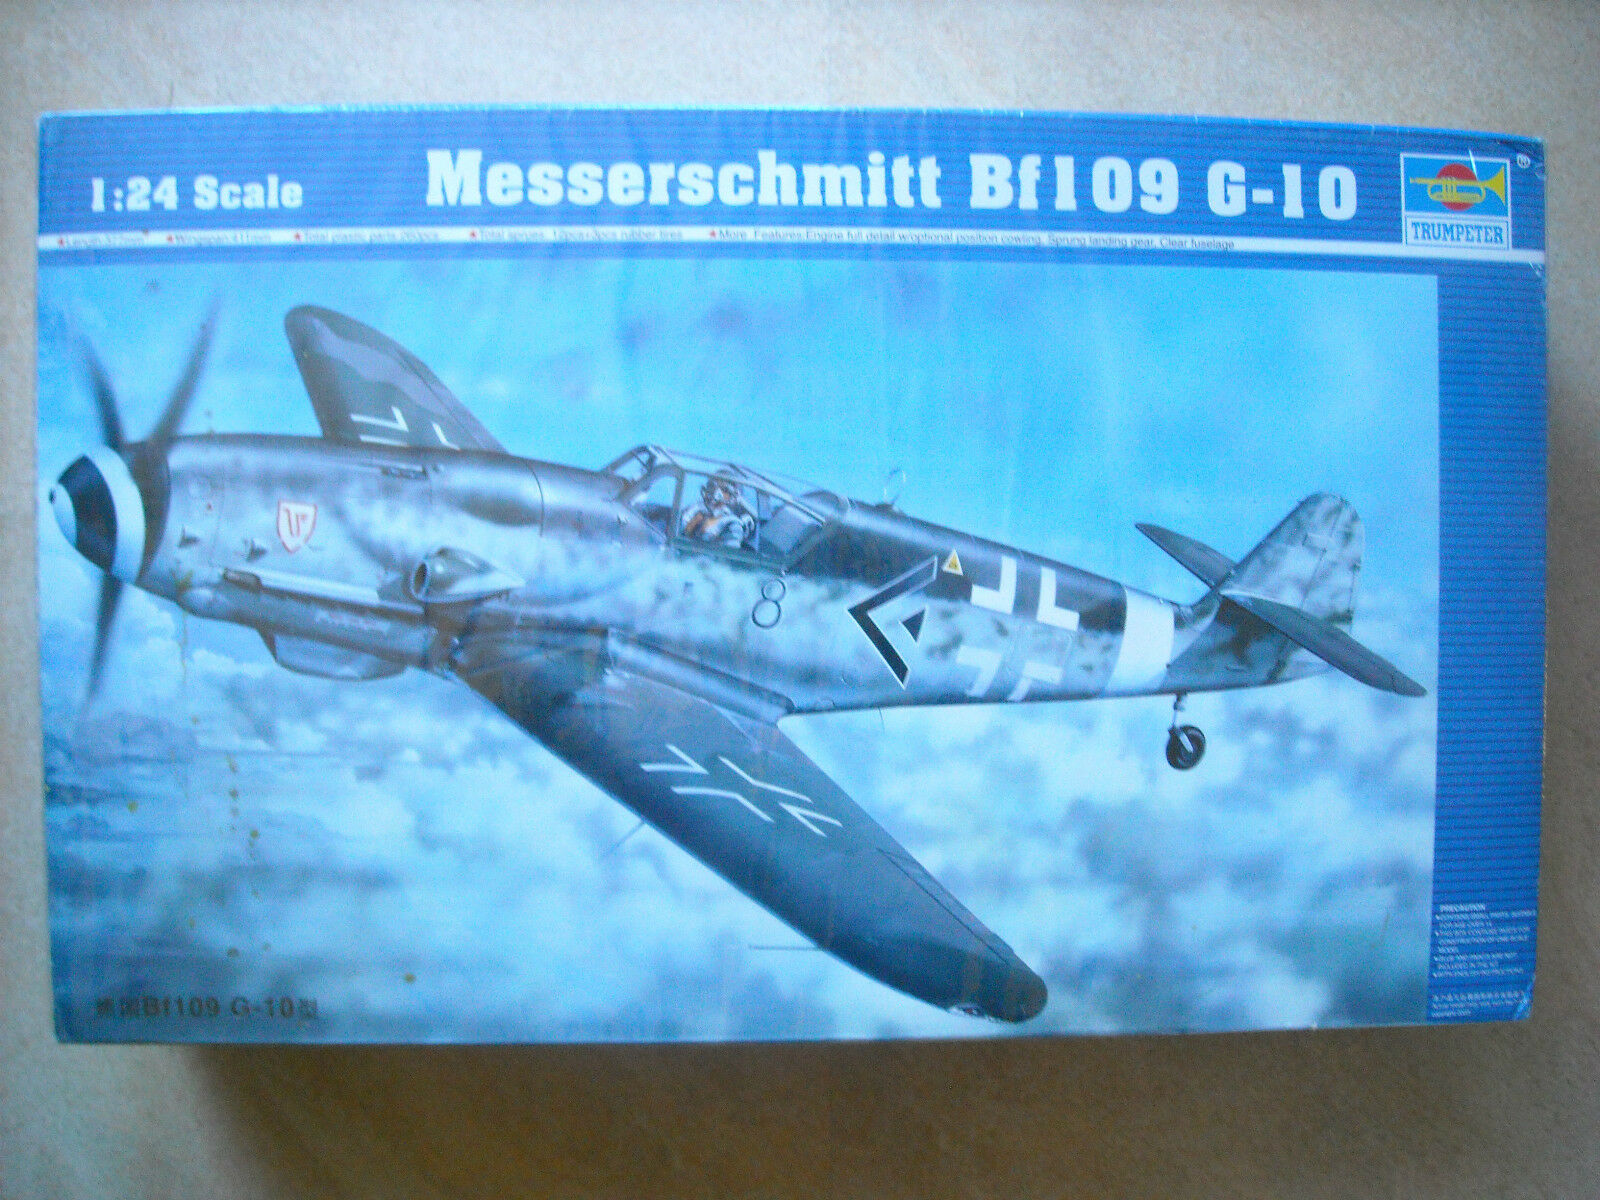 02409 Trumpeter 1 24 Model Messerschmitt BF109 G-10 Plastic Plane Fighter Jet